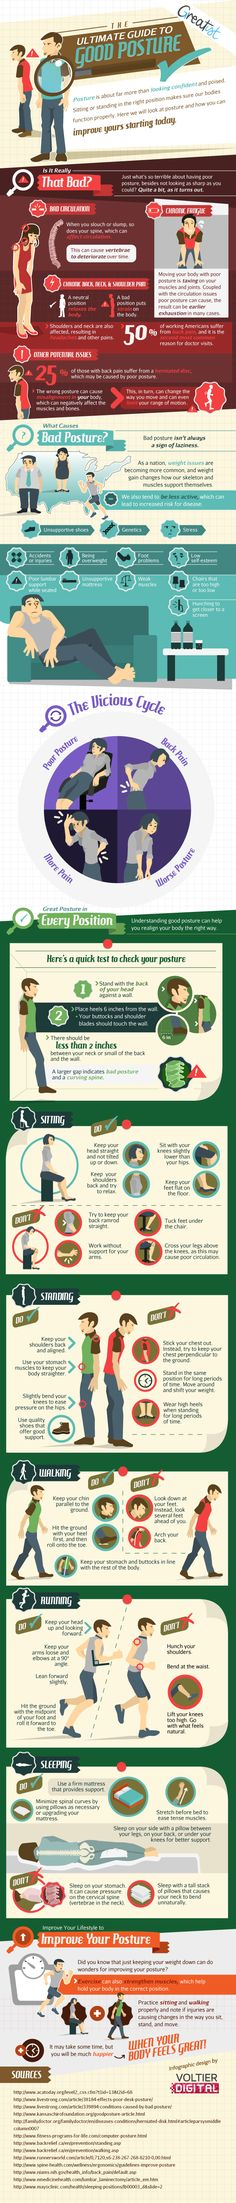 The Ultimate Guide to Good Posture  So I don't have to whack people upside the head when they slouch